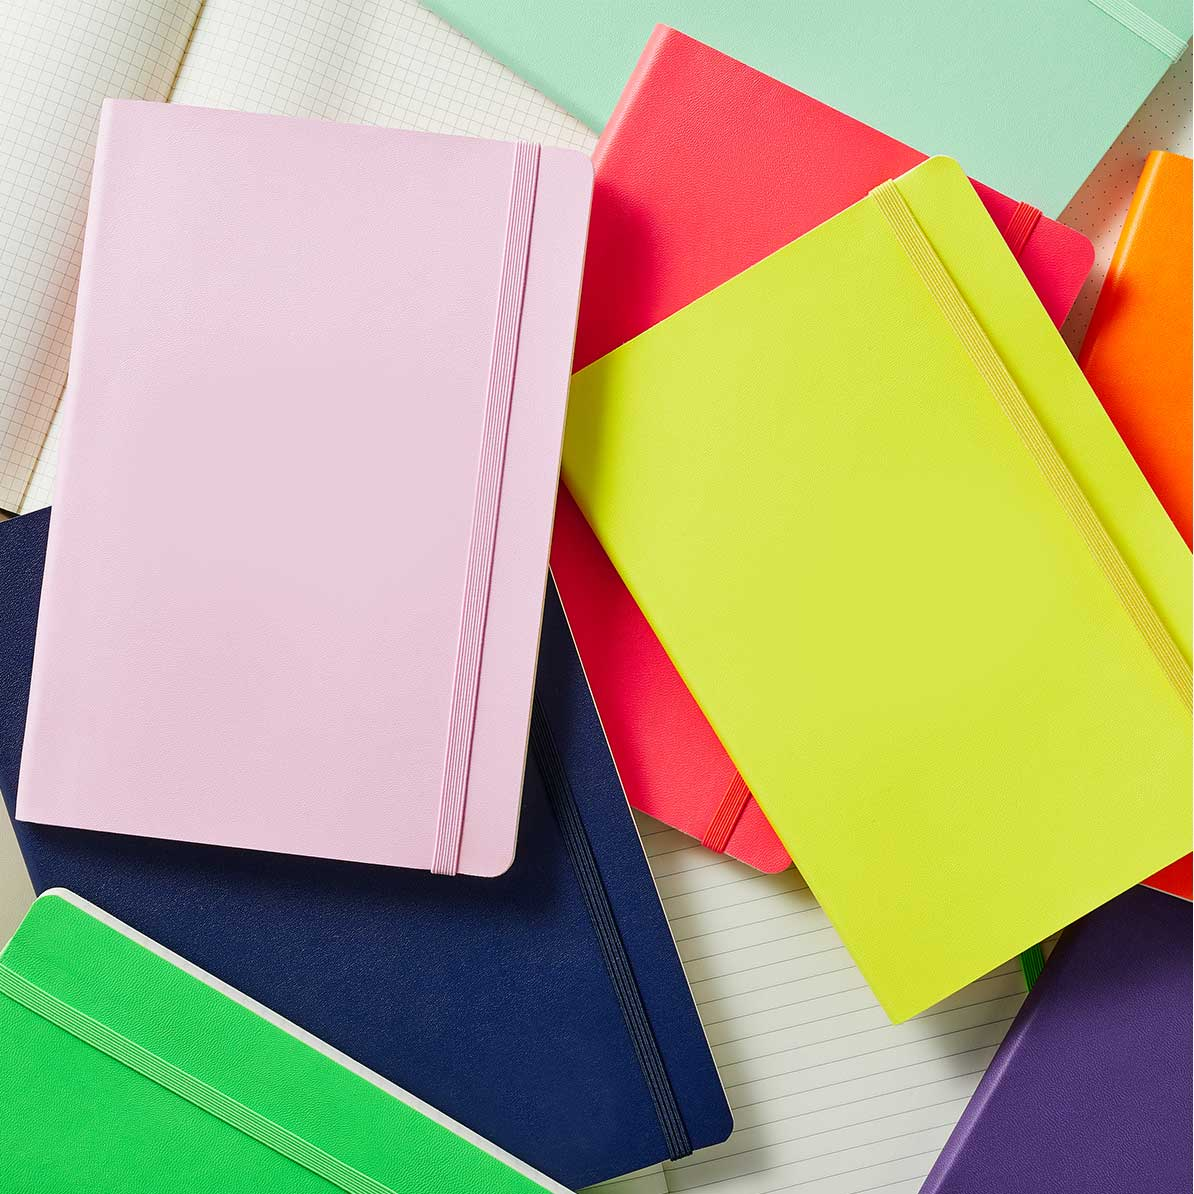 Agenio Notebooks